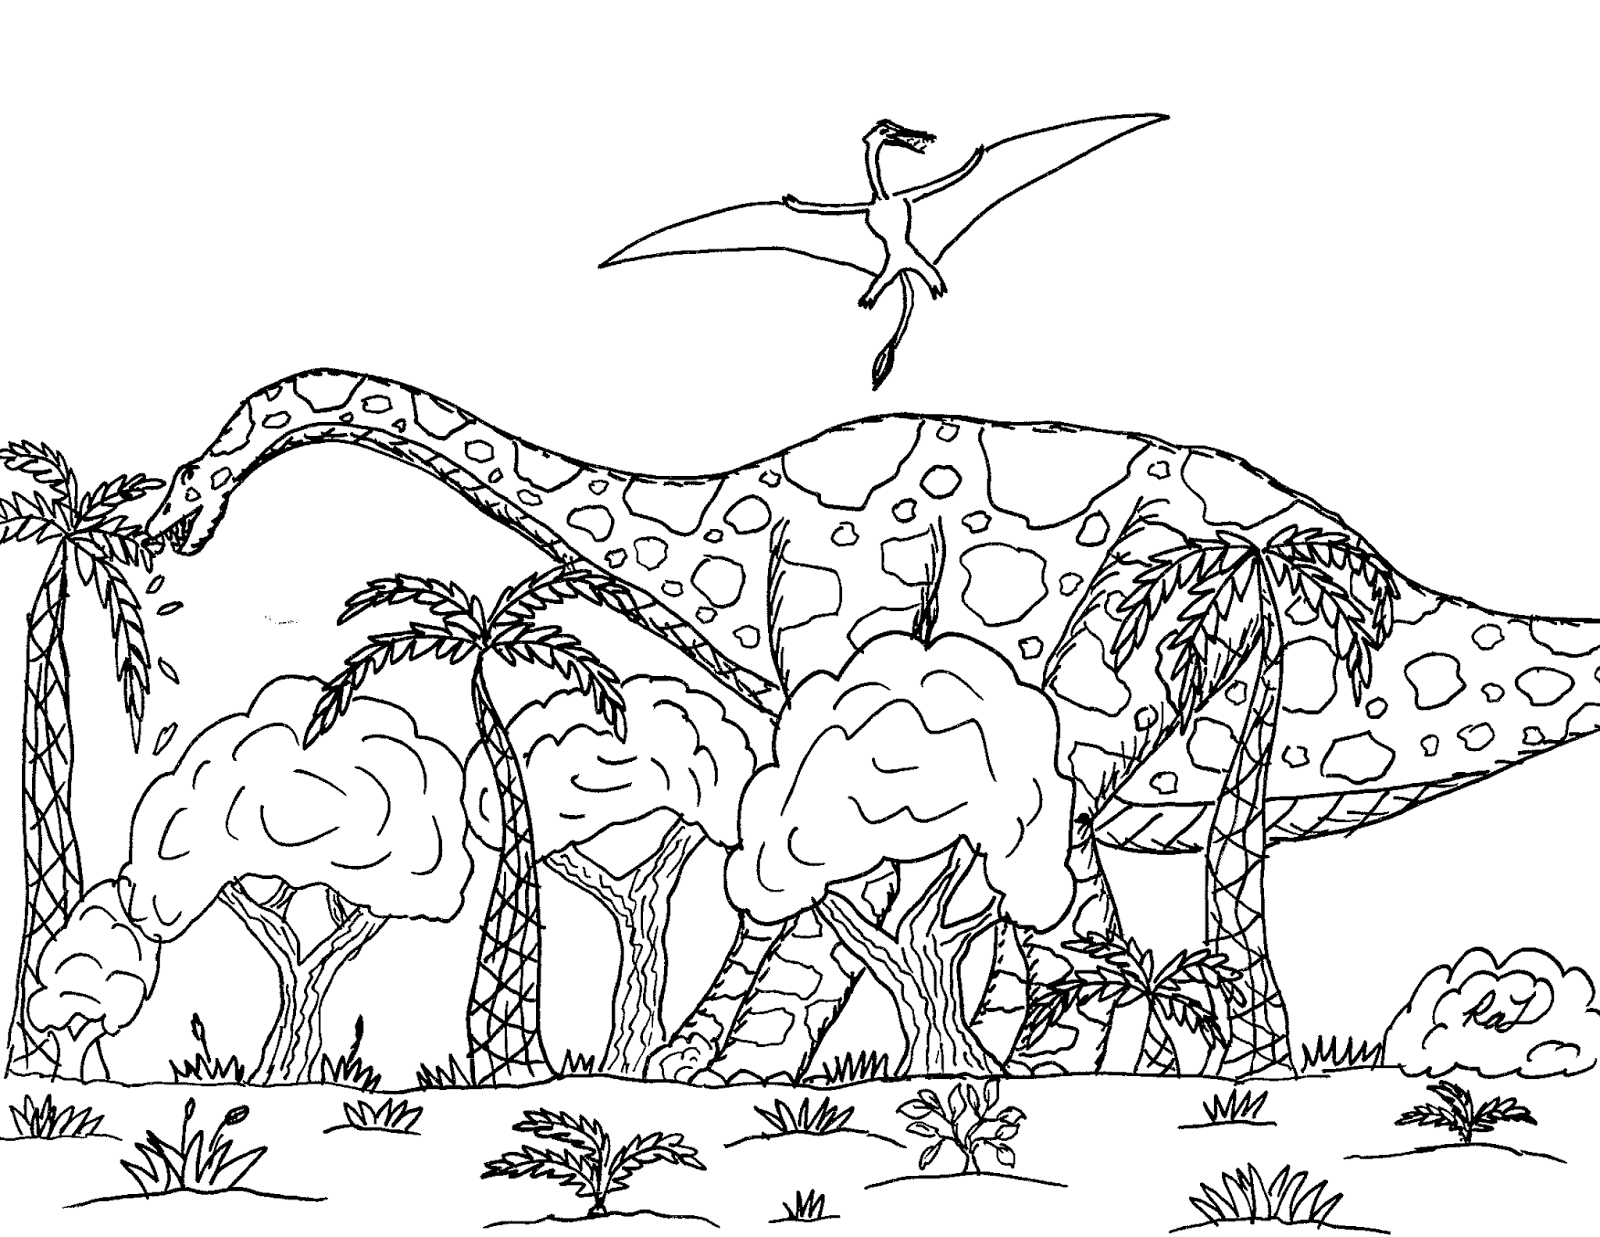 herbivore dinosaur coloring pages - photo#13